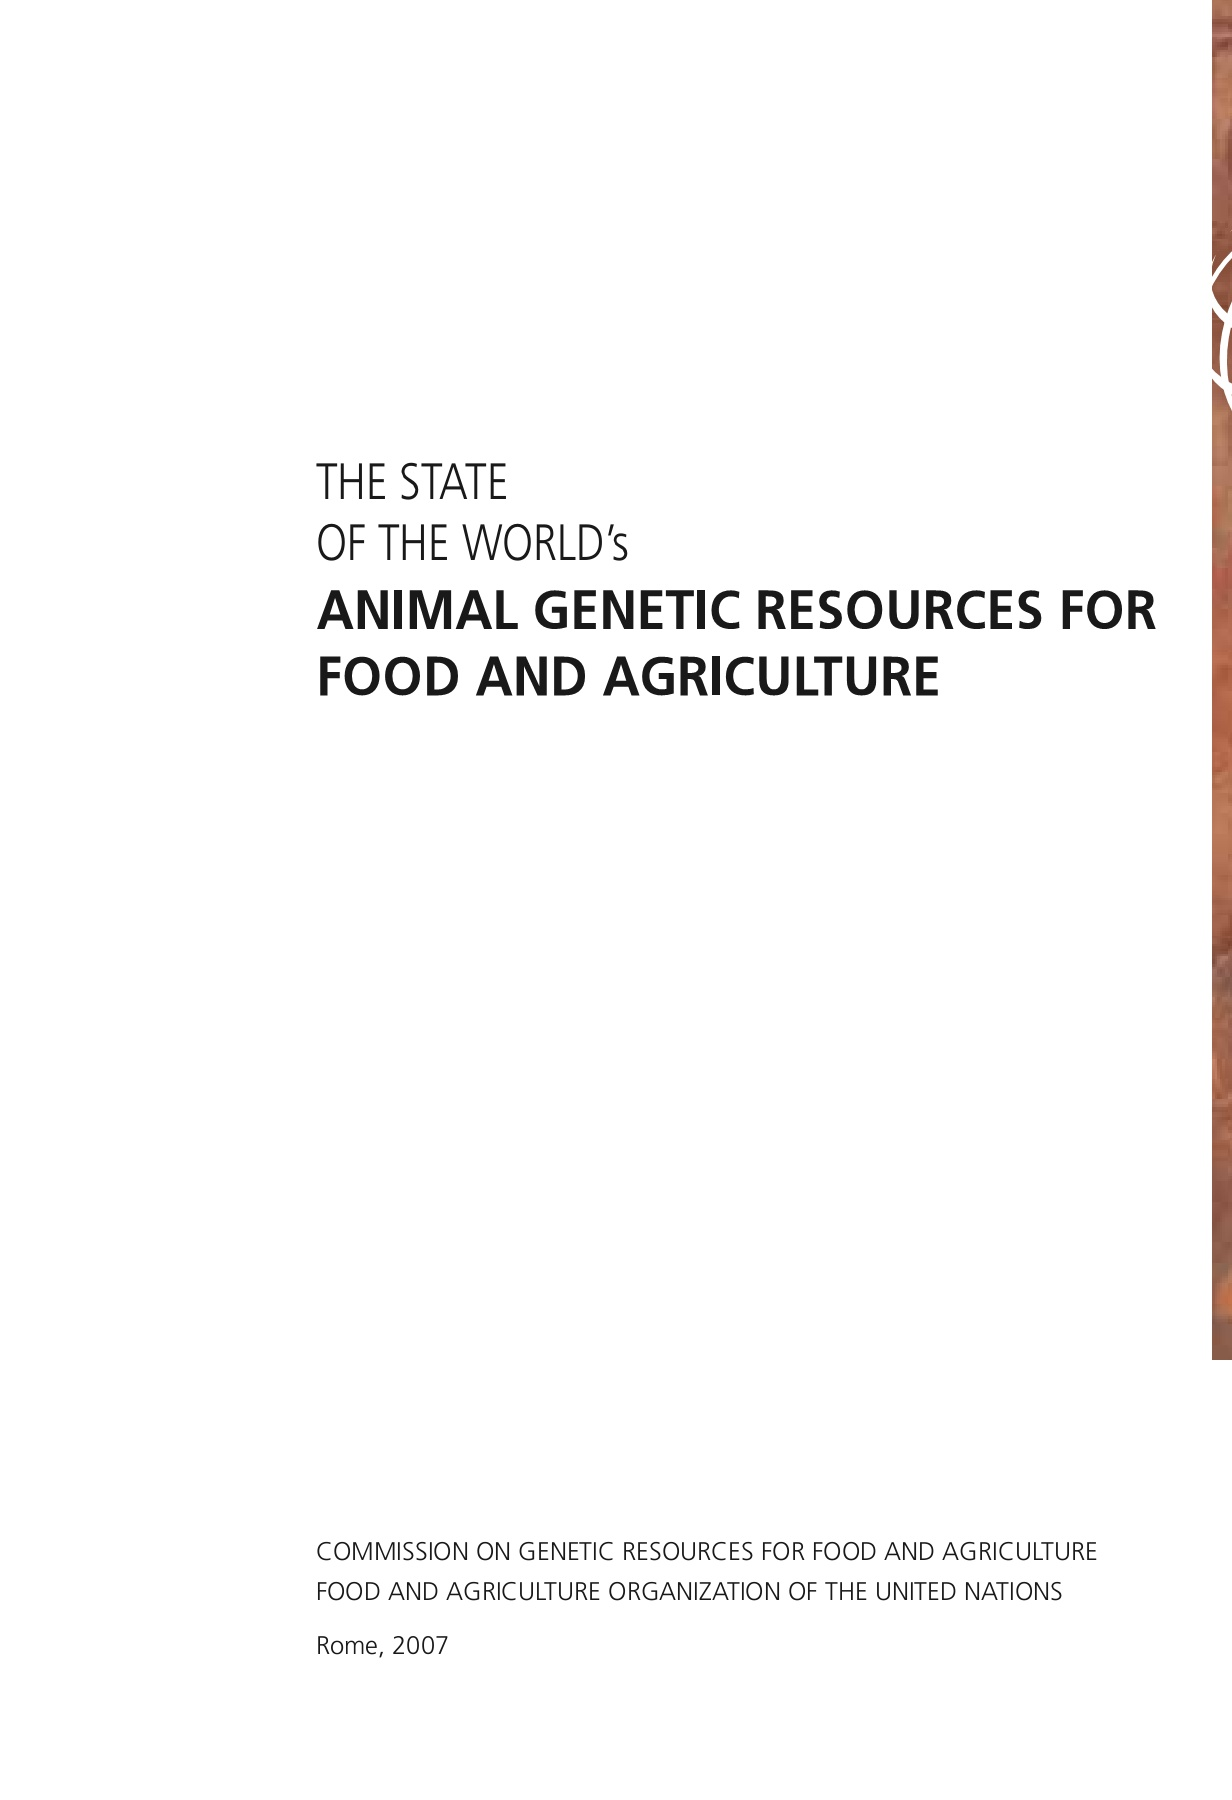 ANIMAL GENETIC RESOURCES FOR 524 Pages 401 450 Text